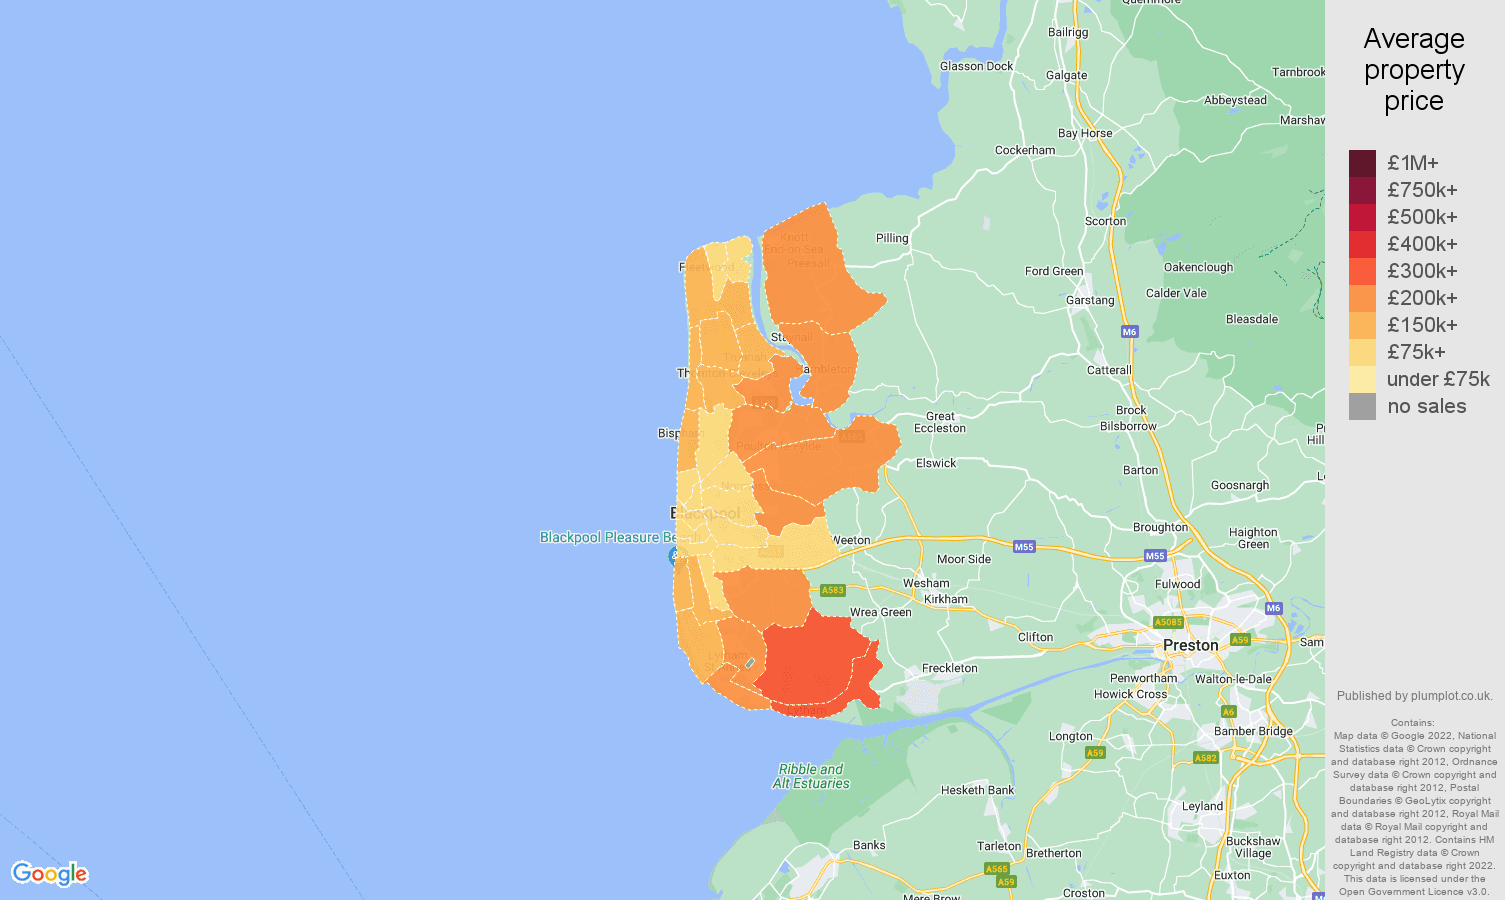 Blackpool house prices map